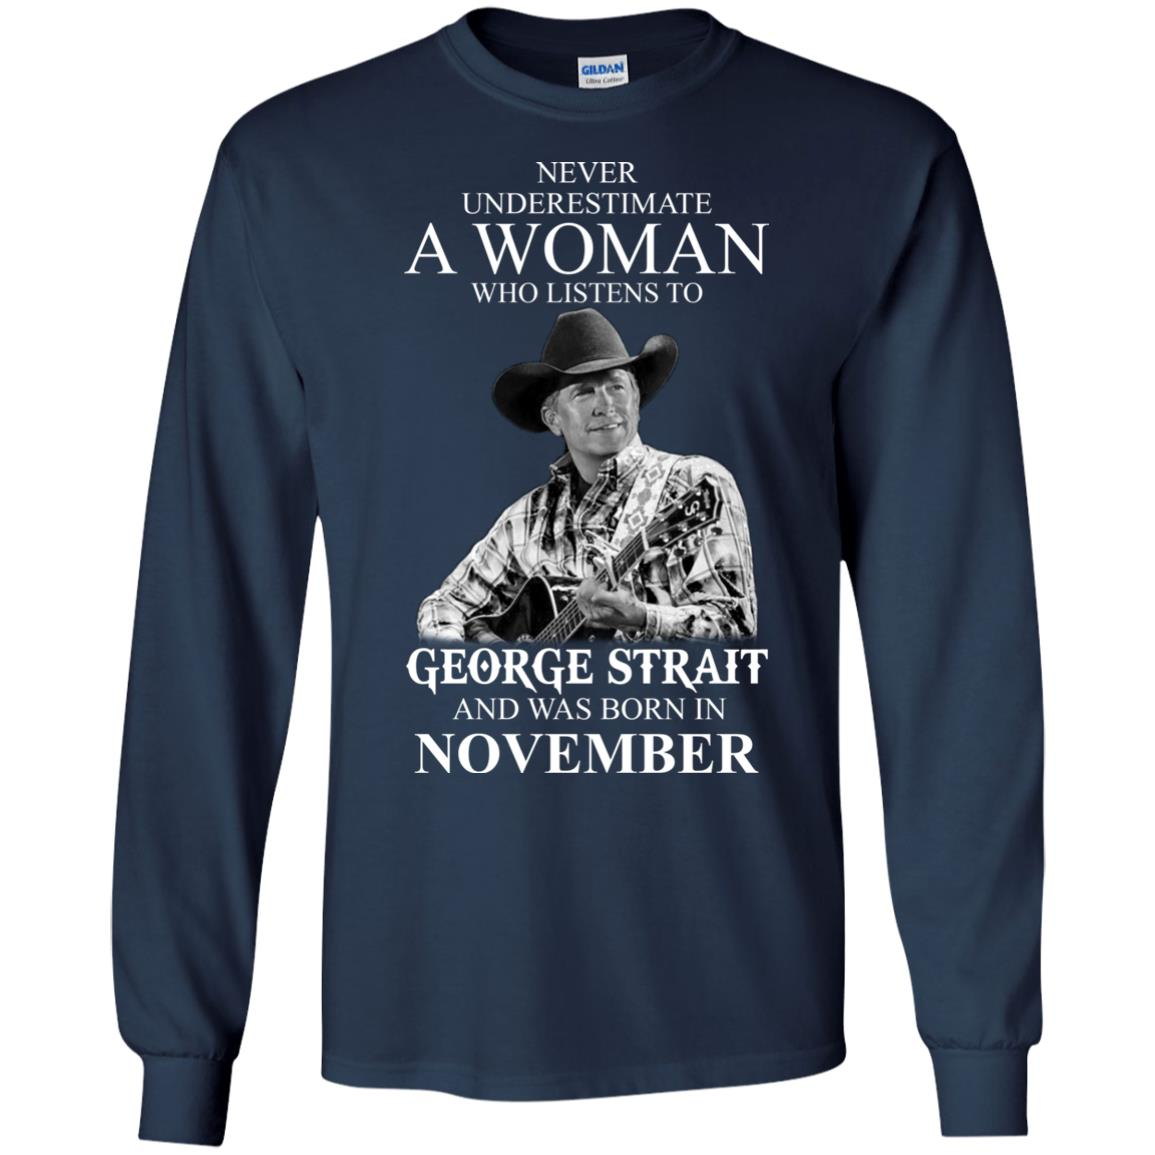 image 353 - Never Underestimate A Woman Who Listens To George Strait And Was Born In November shirt